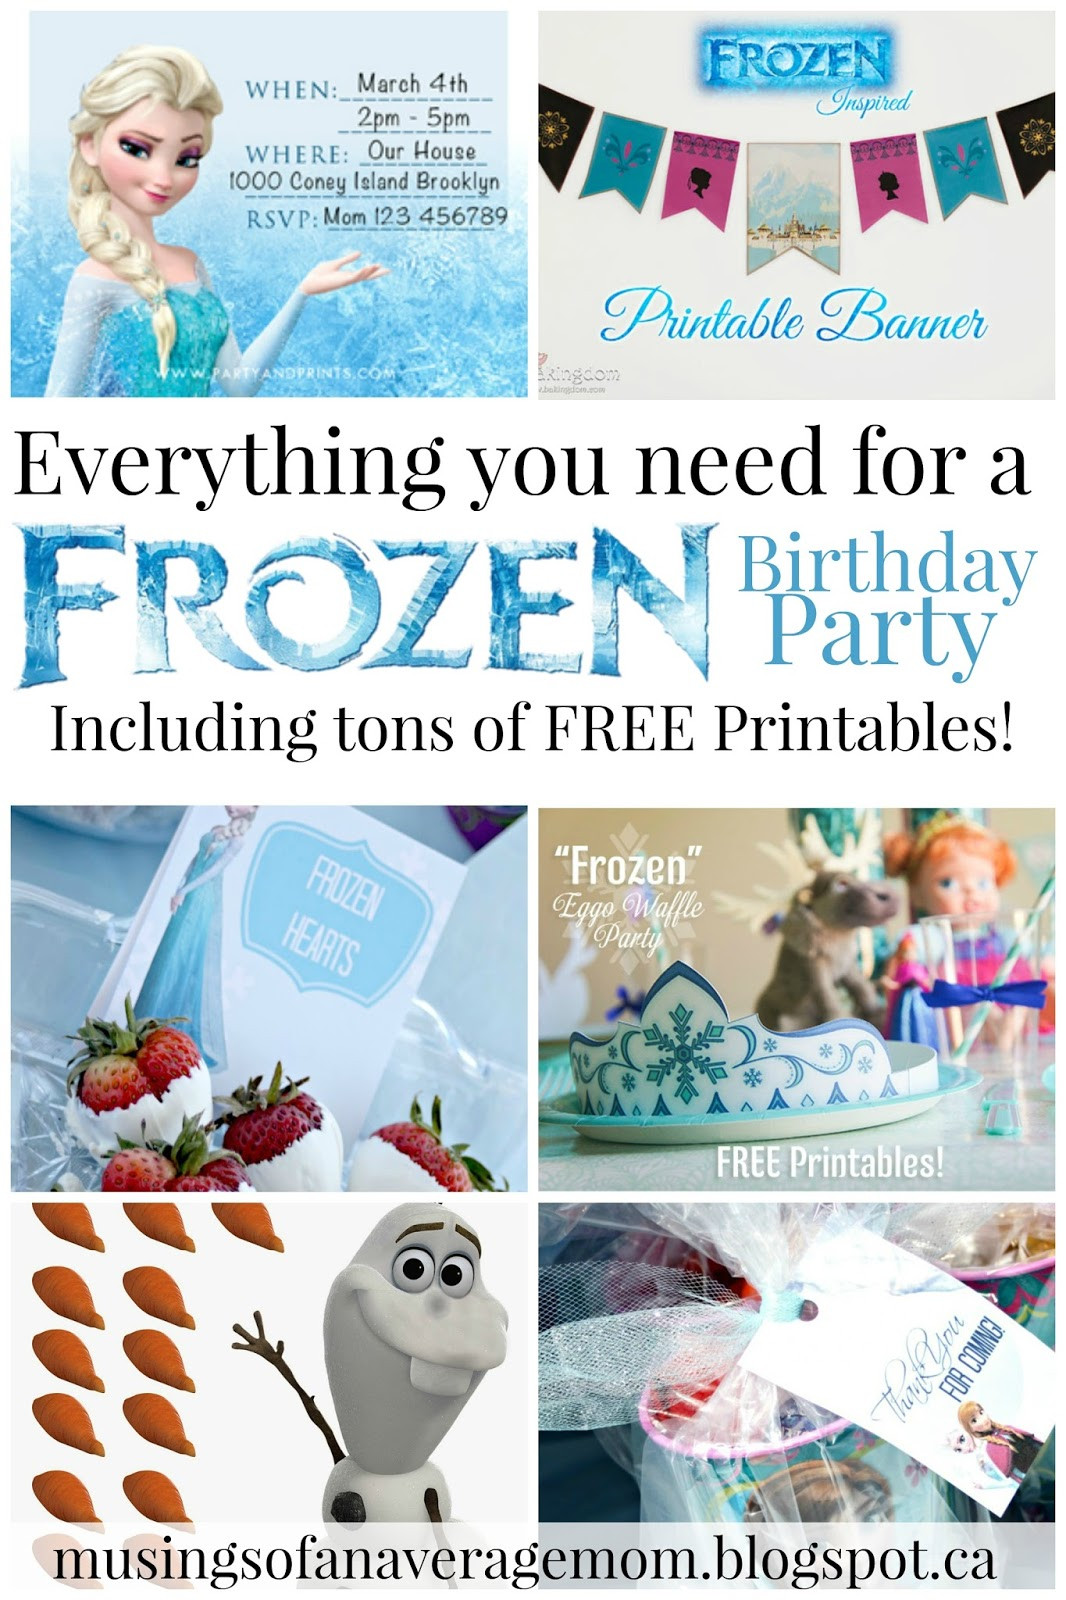 Frozen Printable Birthday Invitations Musings Of An Average Mom Free Frozen Party Printables